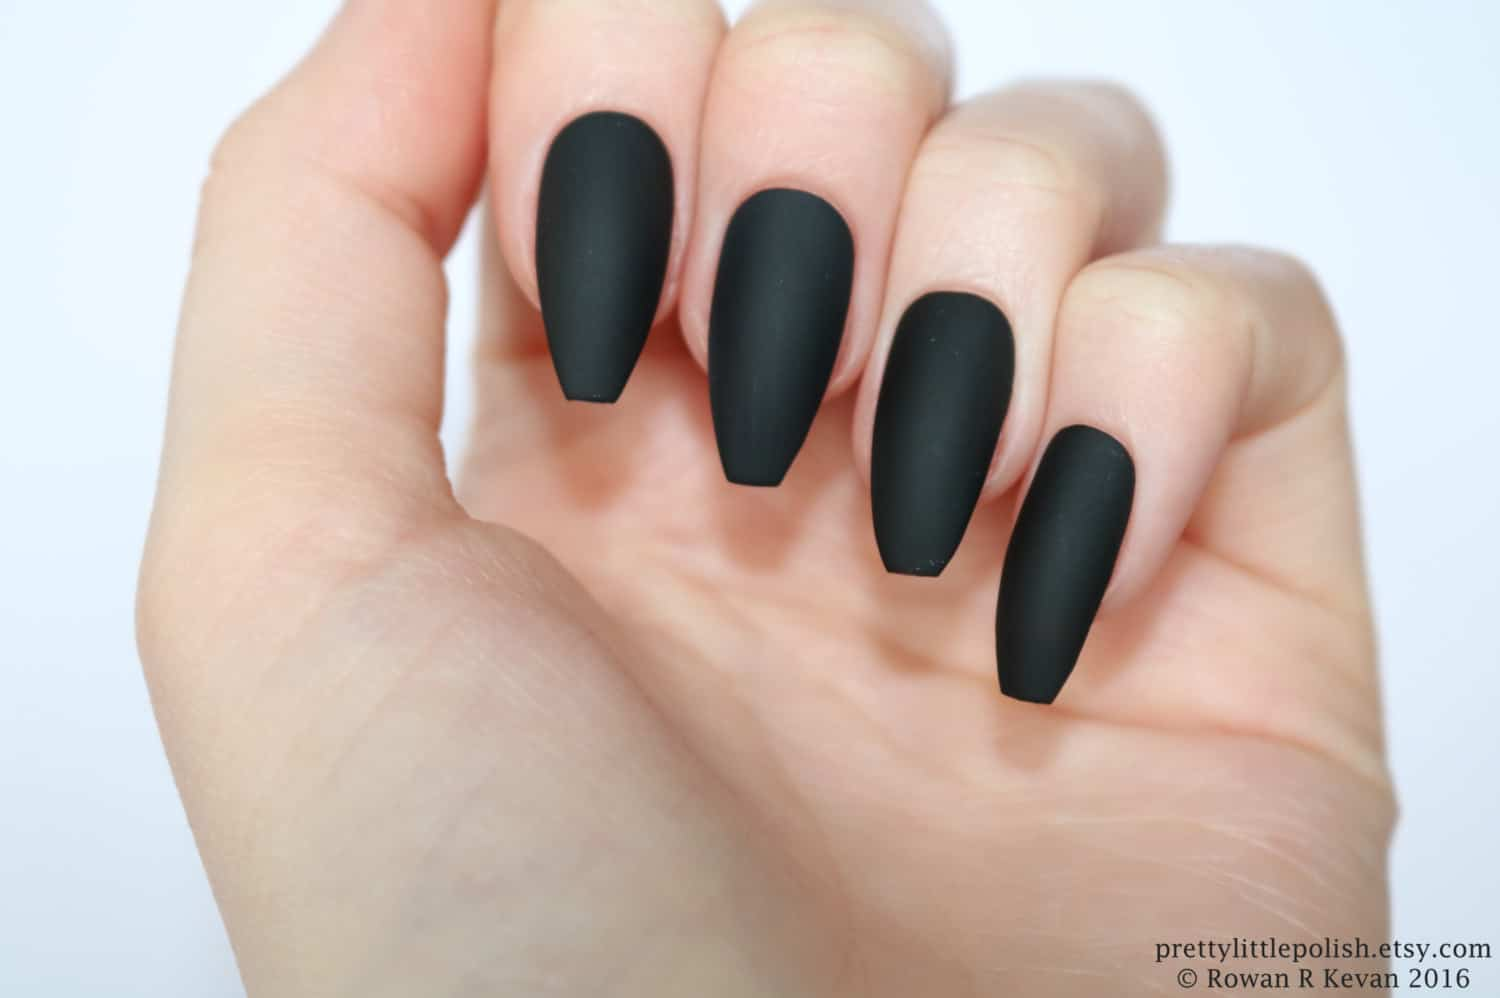 12 Best Matte Black Coffin Nails for 2020 – NailDesignCode